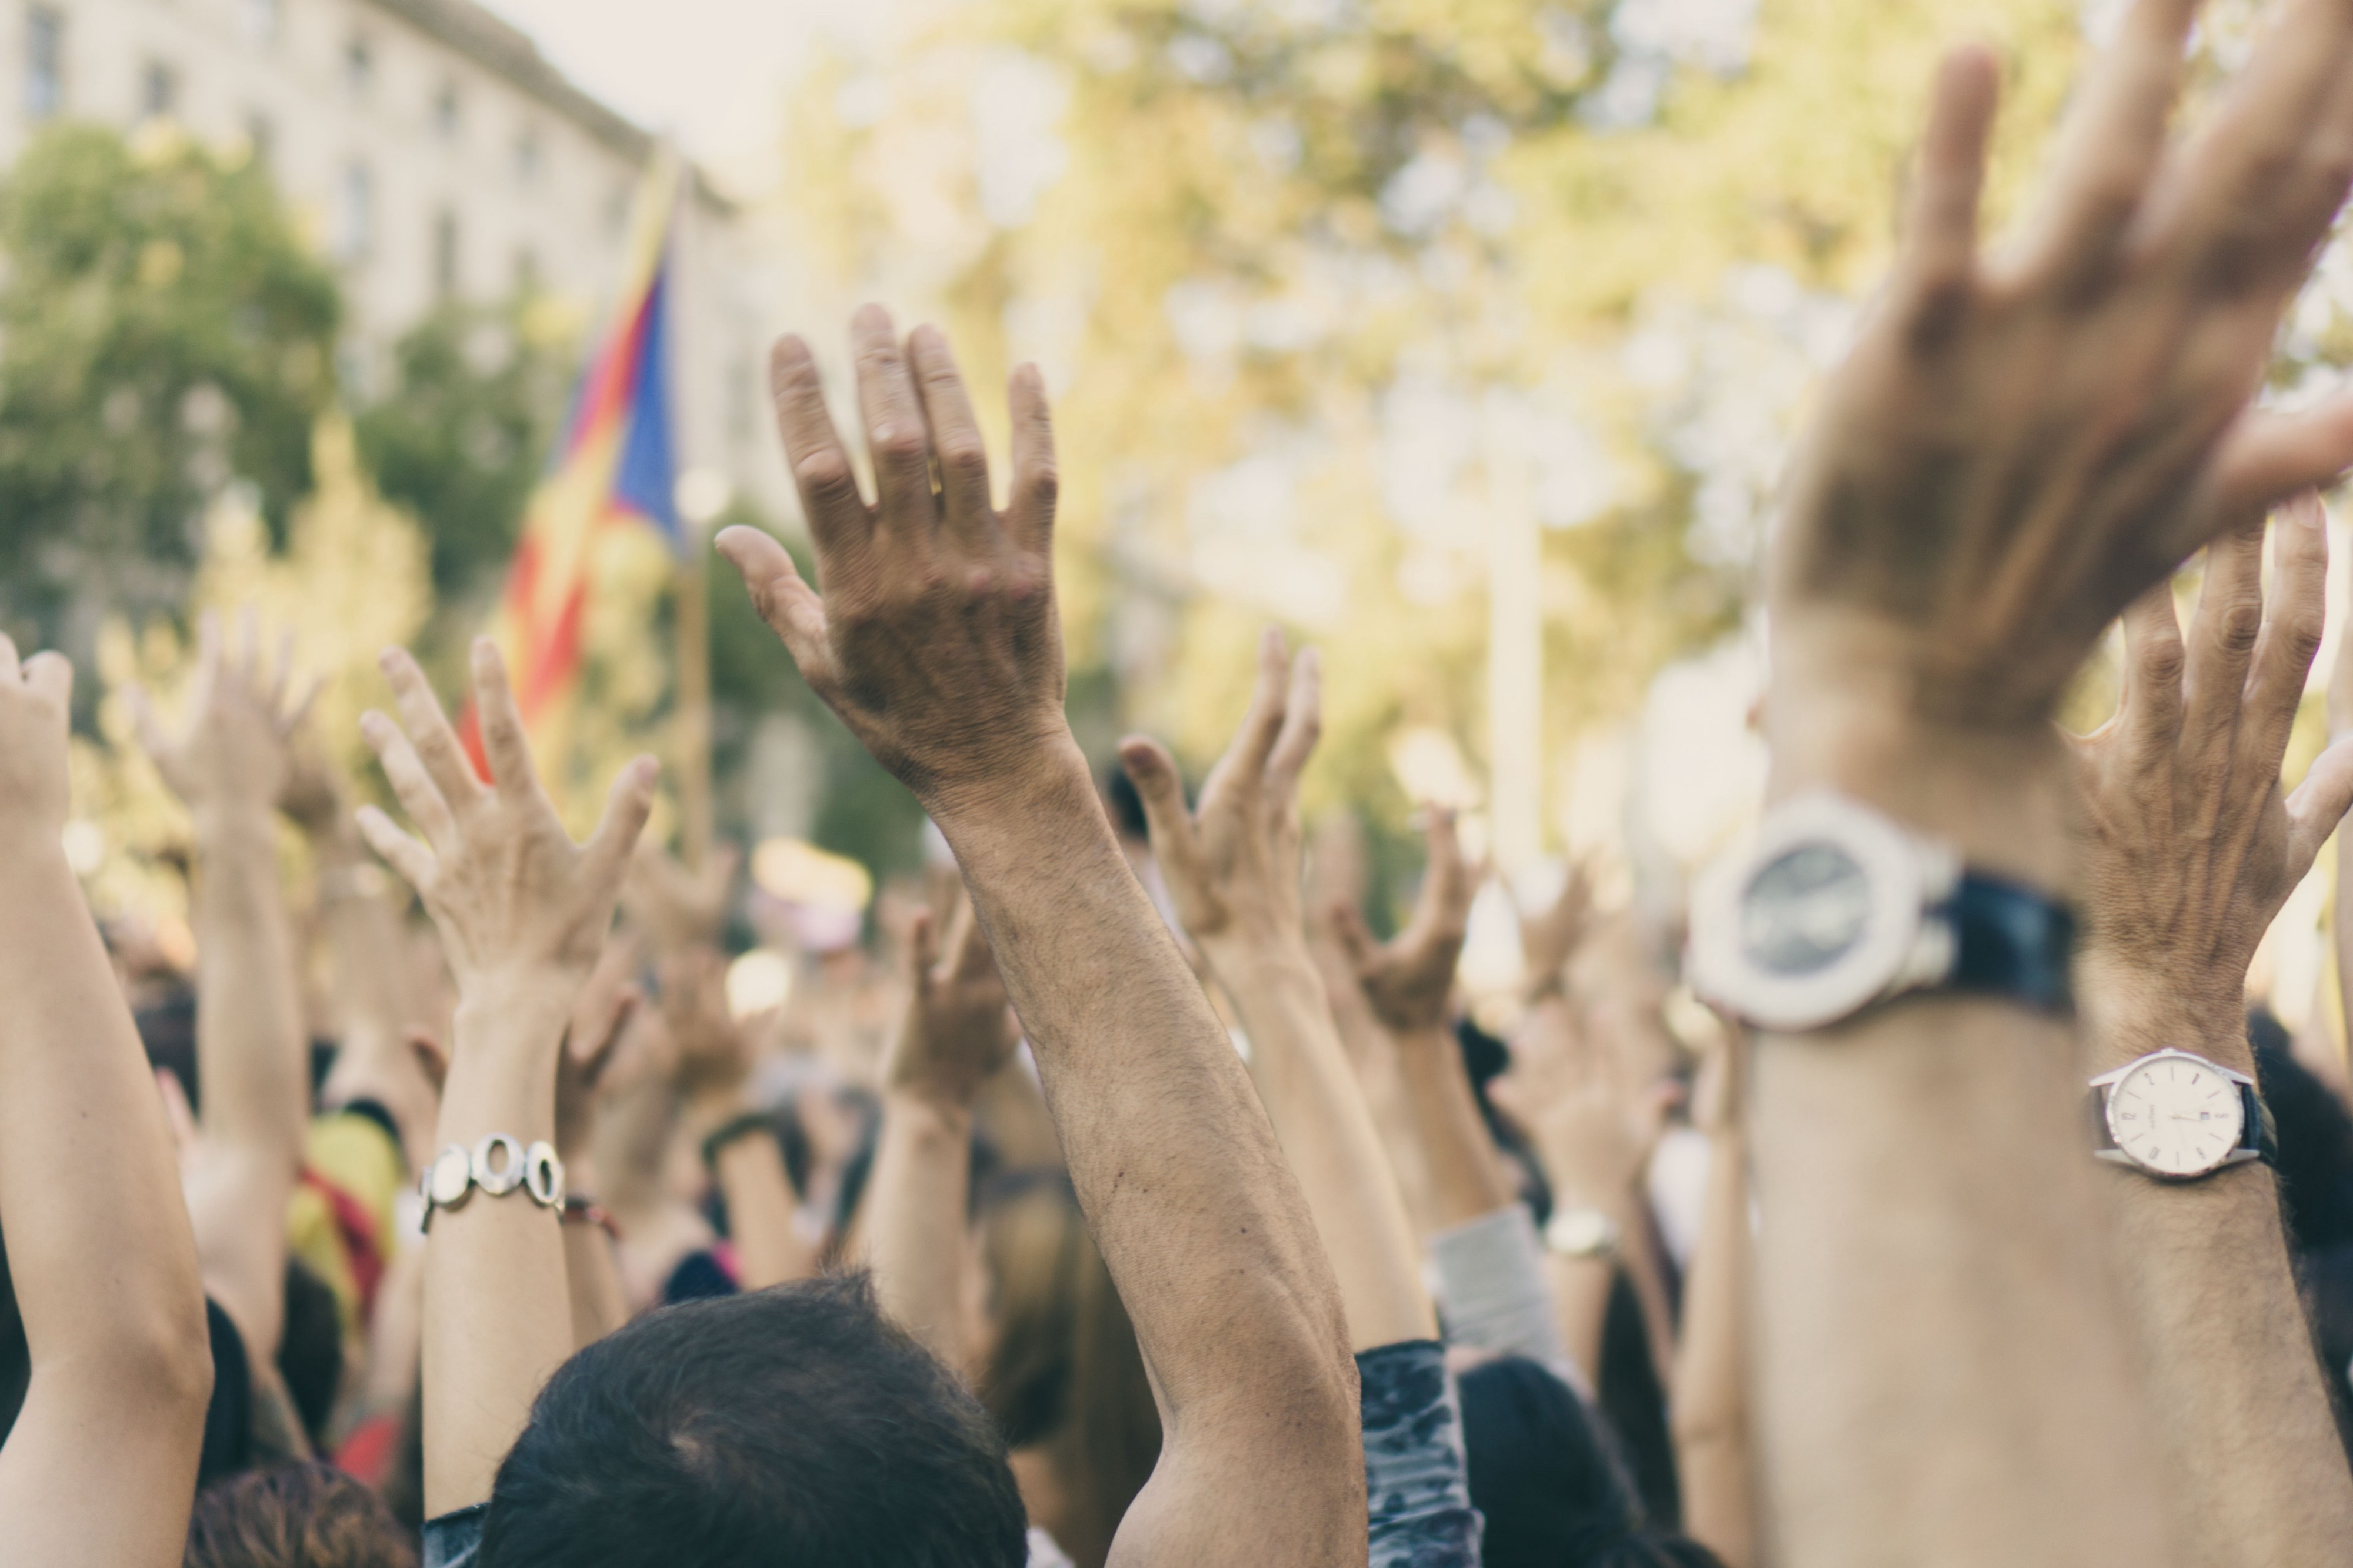 A crowd of people raising their hands in solidarity